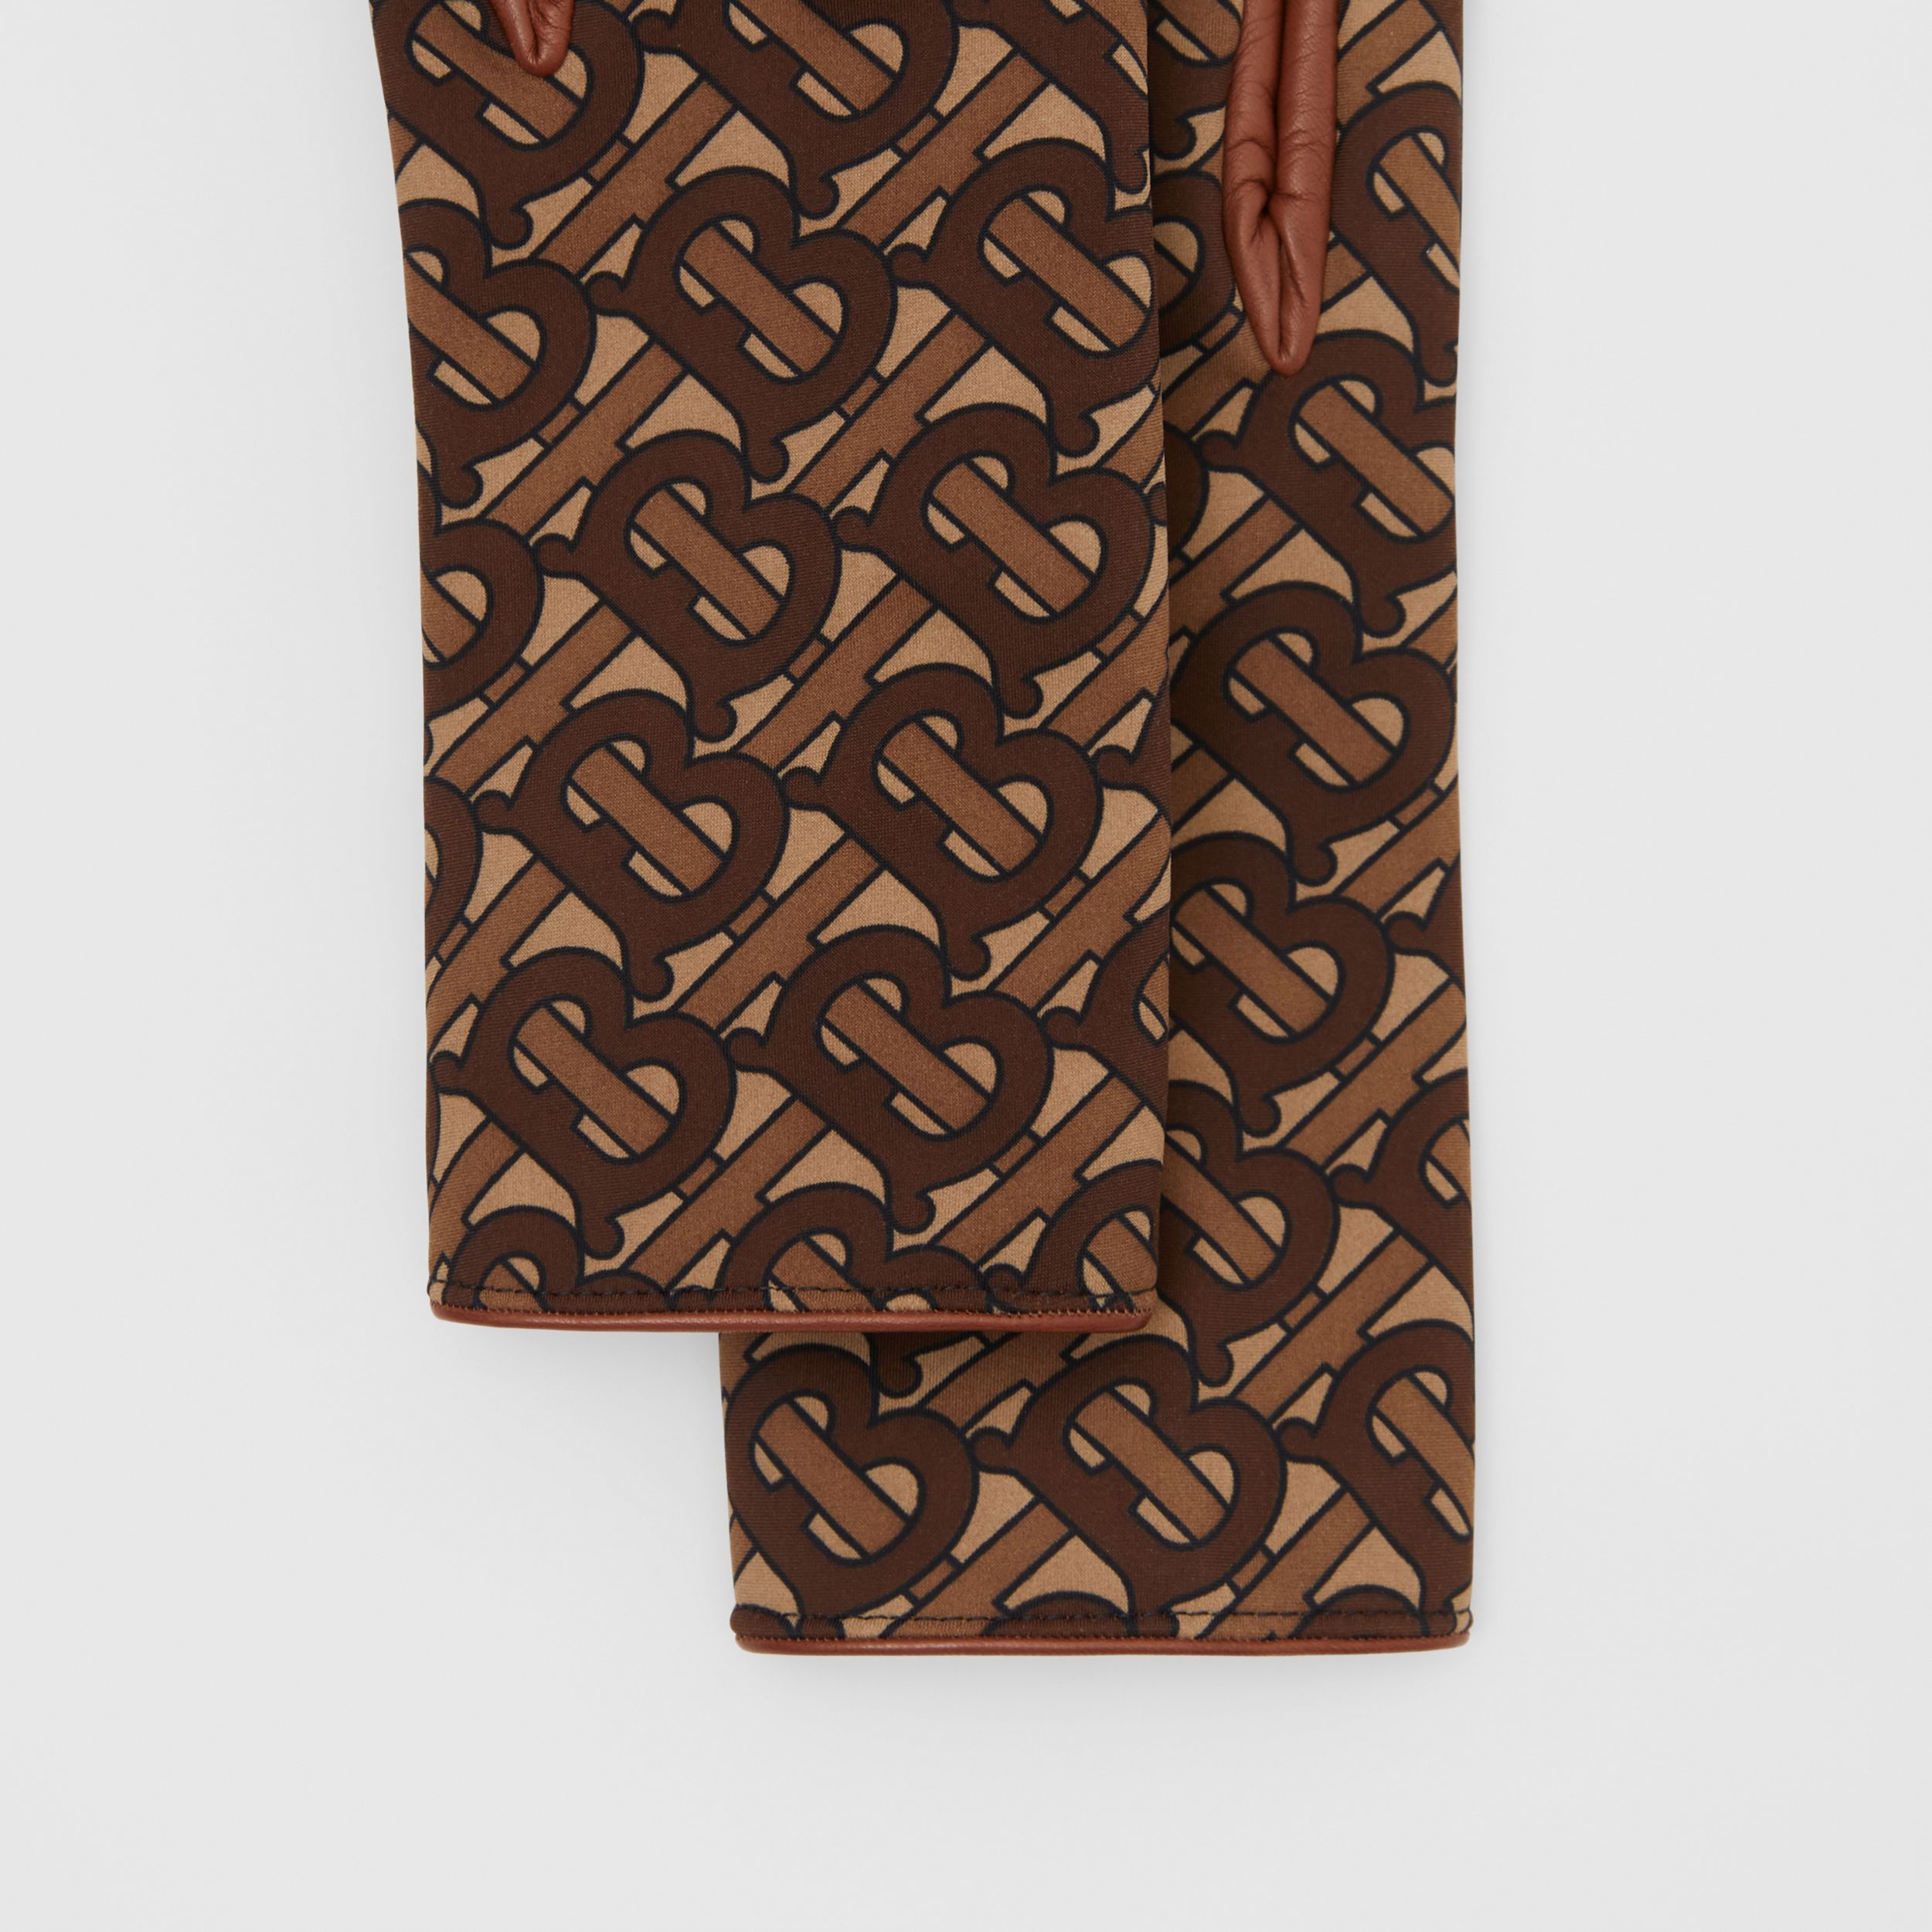 Cashmere-lined Monogram Print Lambskin Gloves in Bridle Brown | Burberry - 2